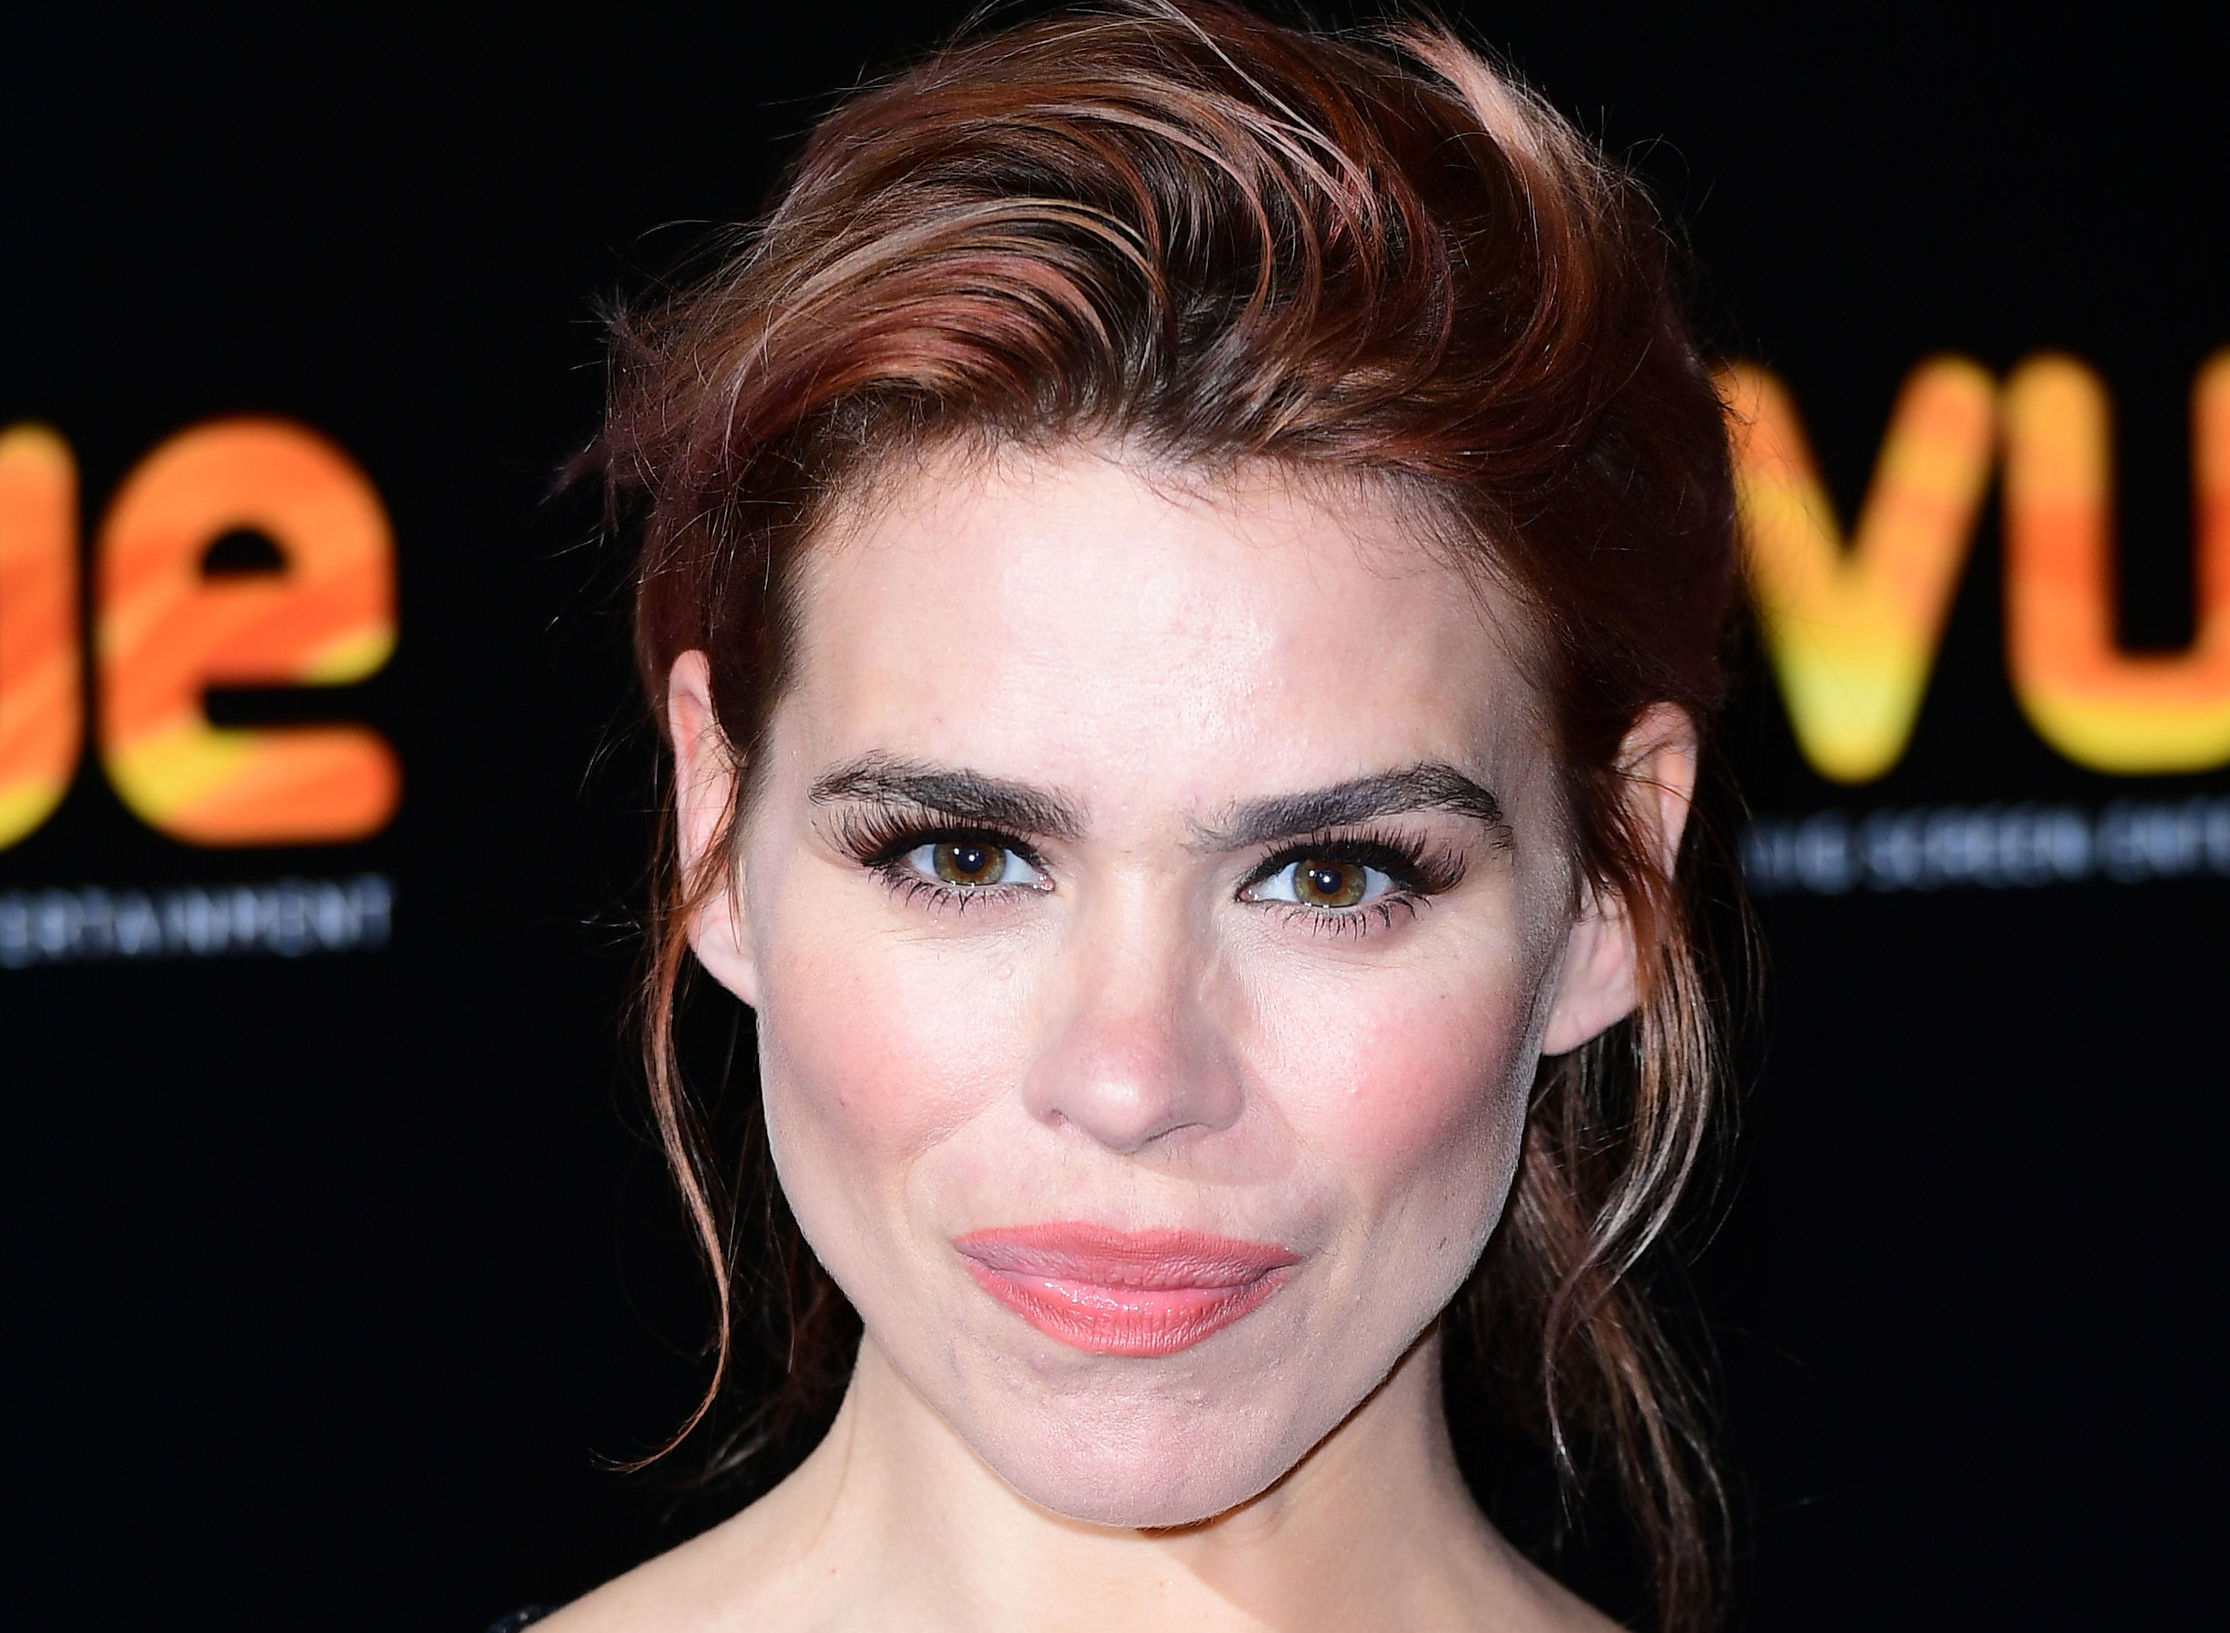 Billie Piper said that she is in a